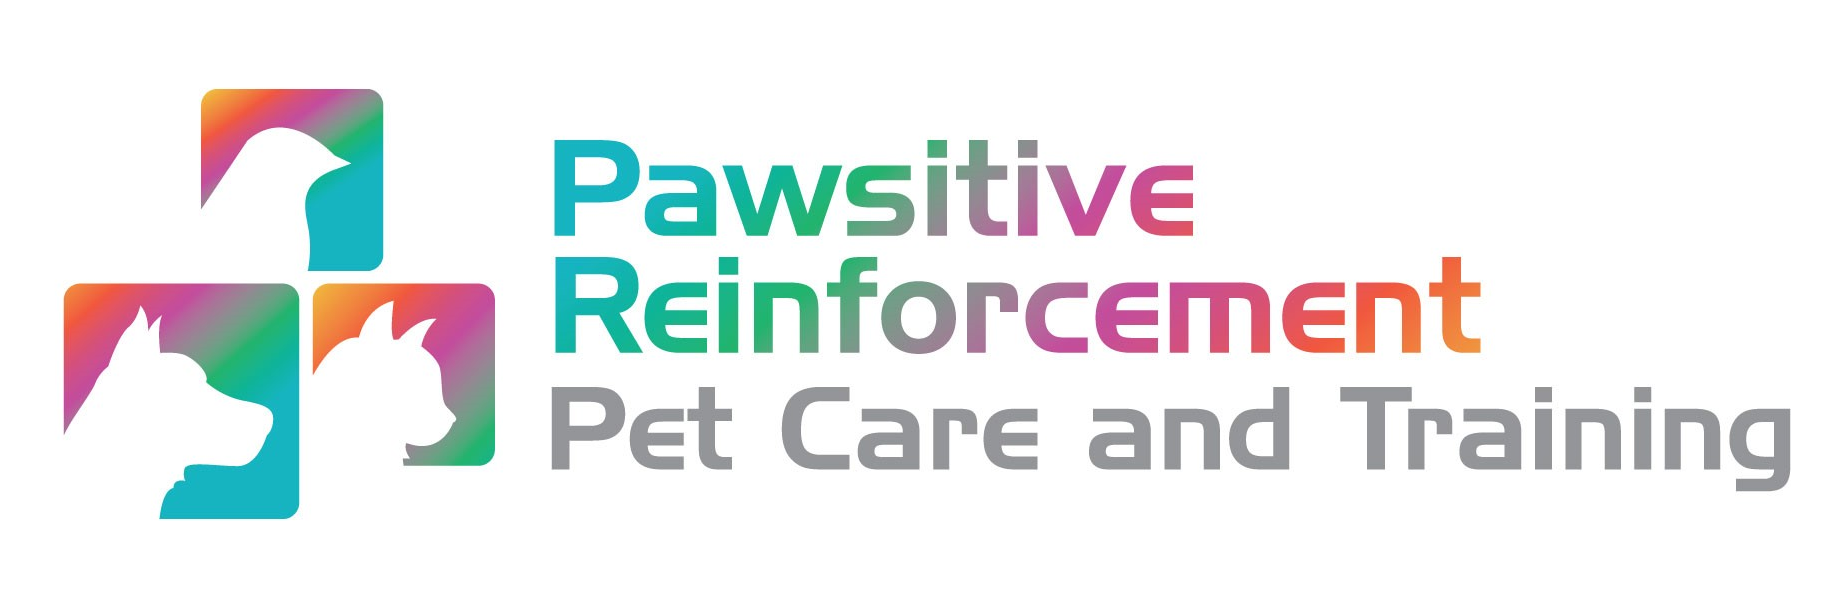 Pawsitive Reinforcement PA